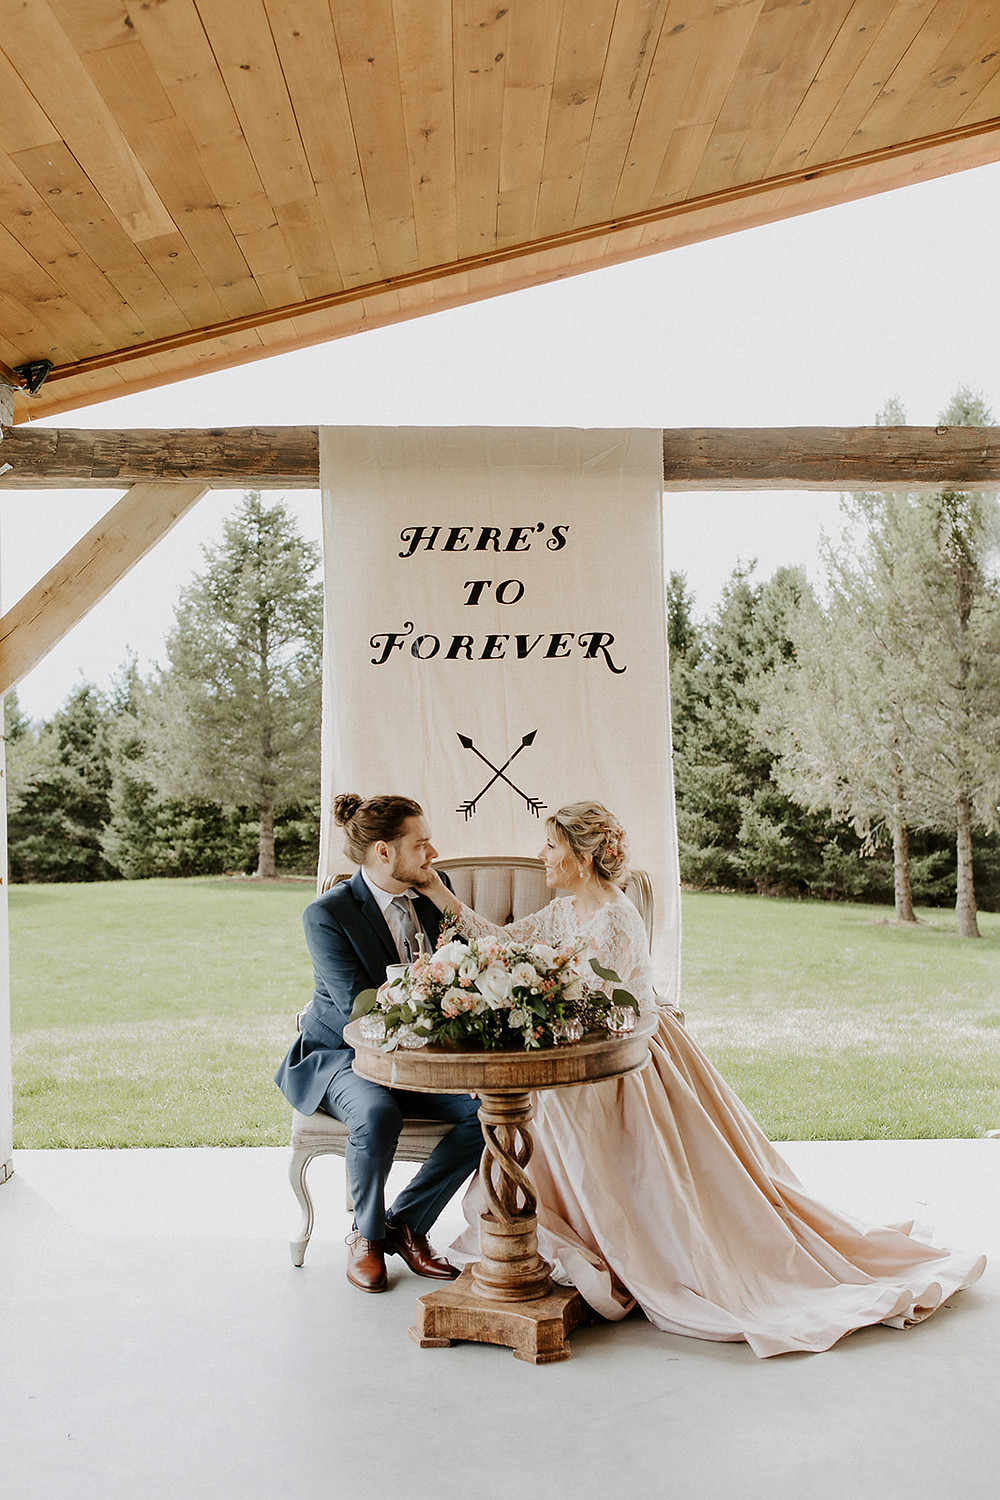 Wedding Sweetheart Table Inspiration by Pretty Little Vintage Co.